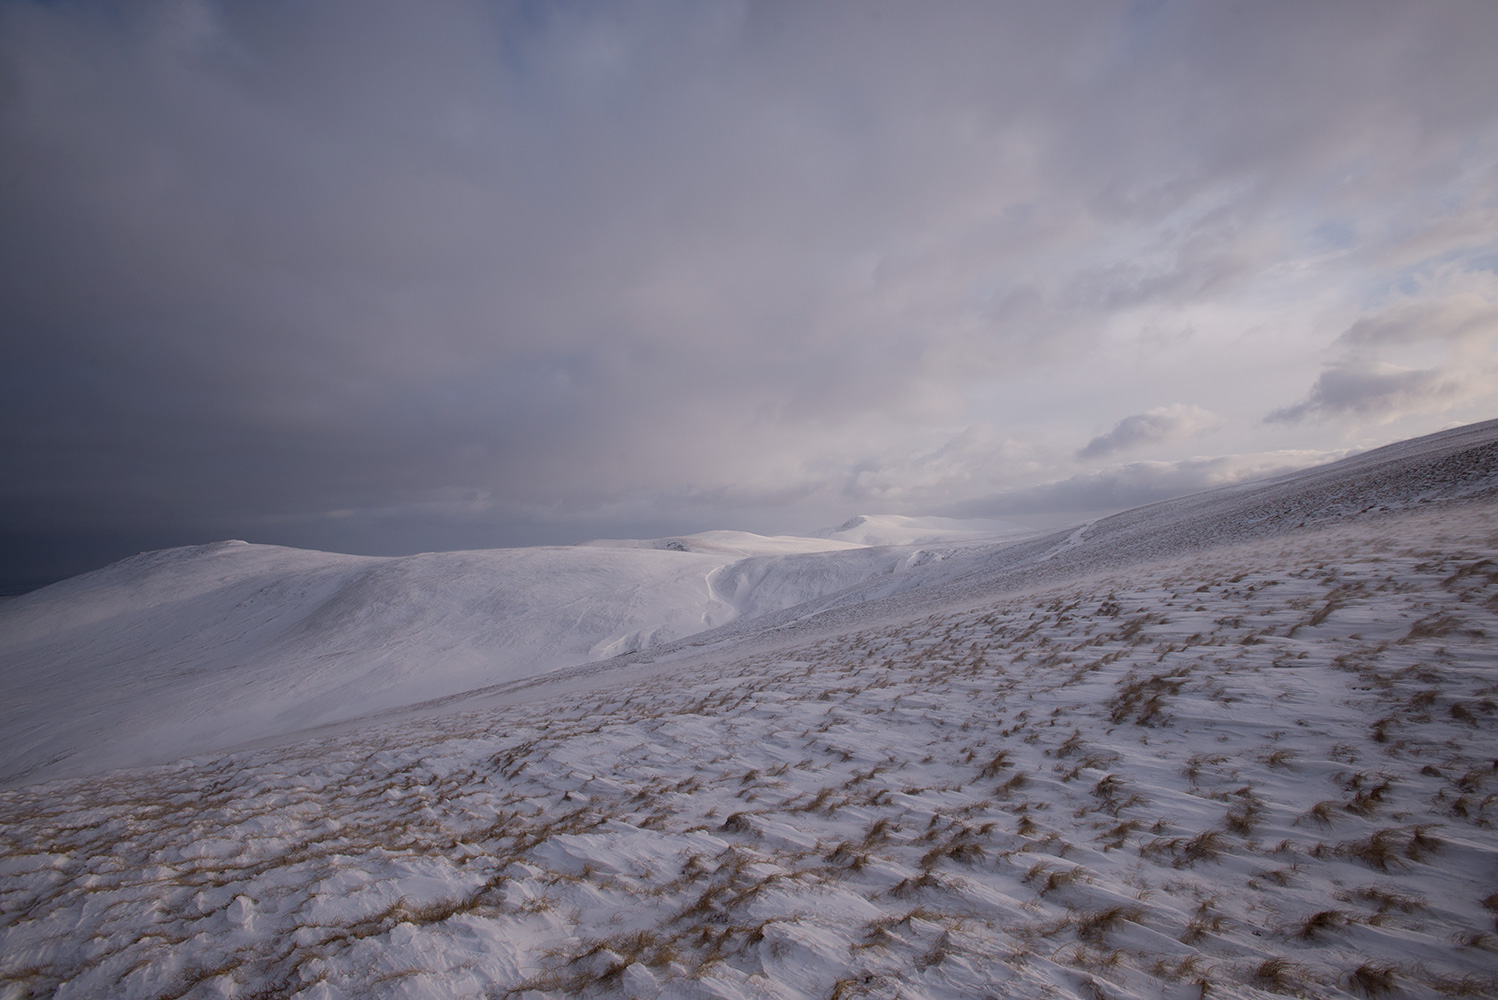 Carrock Fell in winter, Cumbria